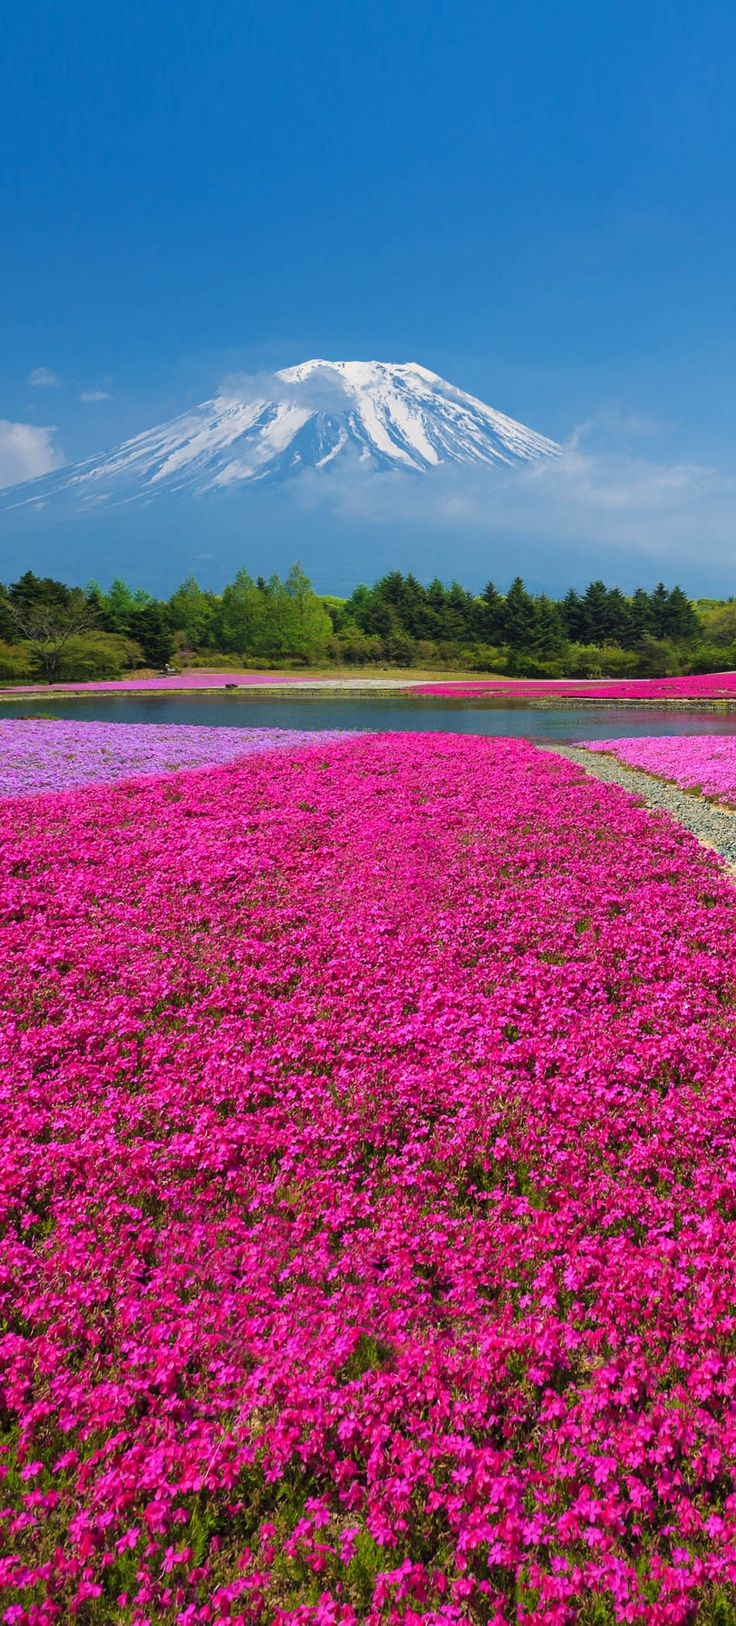 Mount Fuji with the field of pink moss at Shibazakura festival, Yamanashi, Japan | 19 Reasons to Love Japan, an Unforgettable Travel Destination